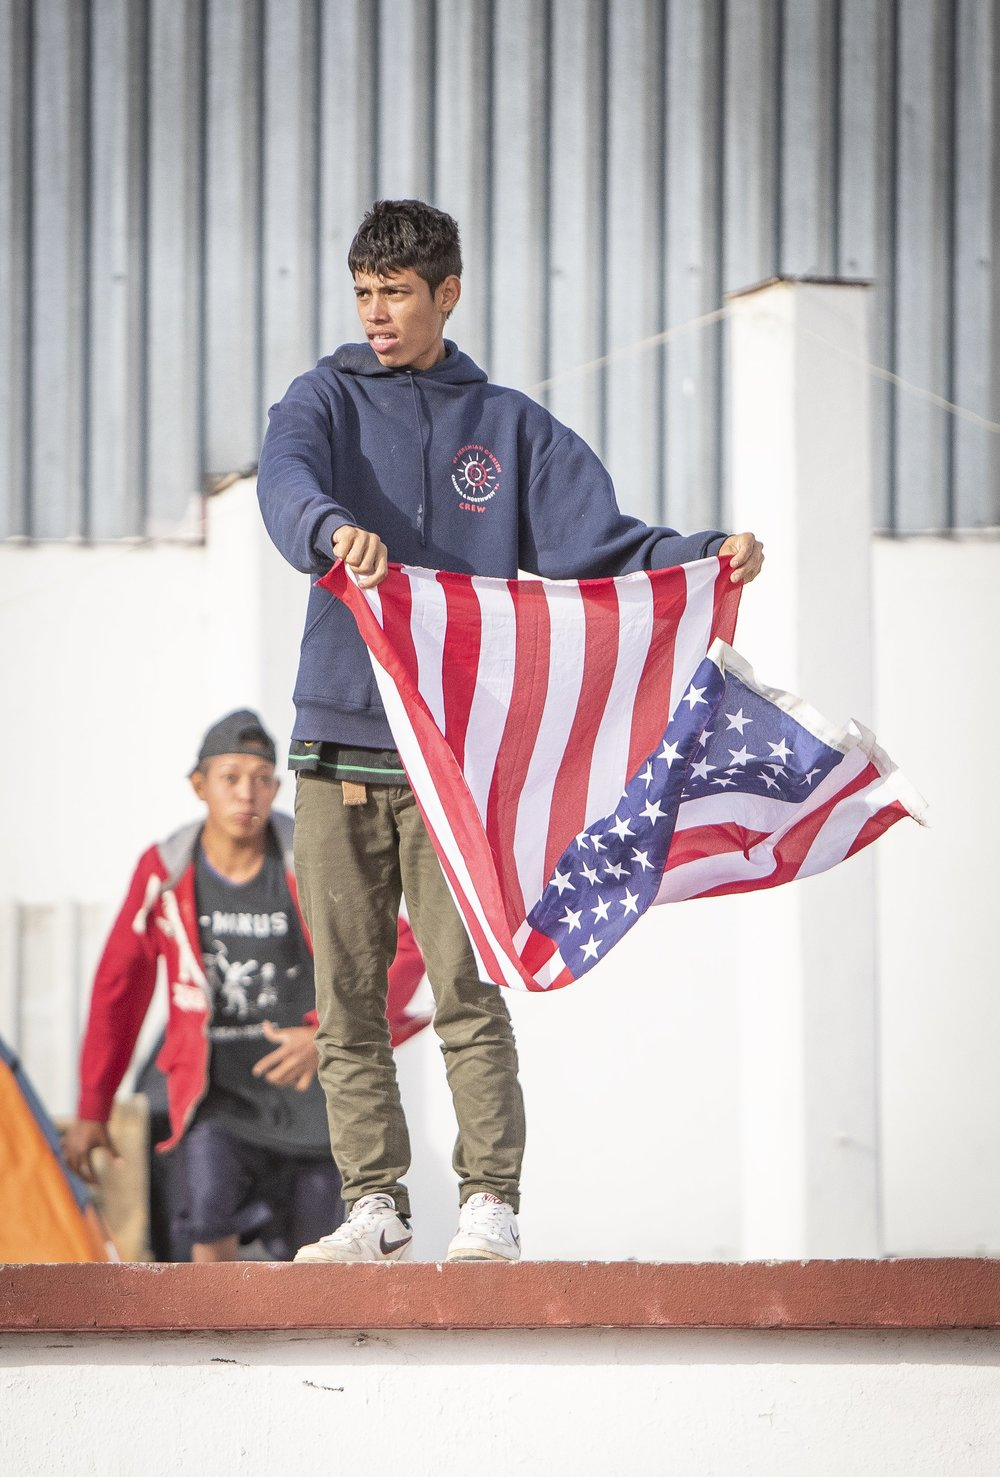 A young male part of the migrant caravan holds up an American Flag, while other members of the caravan arrive at the El Barretal nightclub, turned into a temporary shelter in, Mariano Matamoros, Tijuana, B.C., Mexico. December 1st, 2018. Photo By: Daniel Bowyer / Corsair Contributor